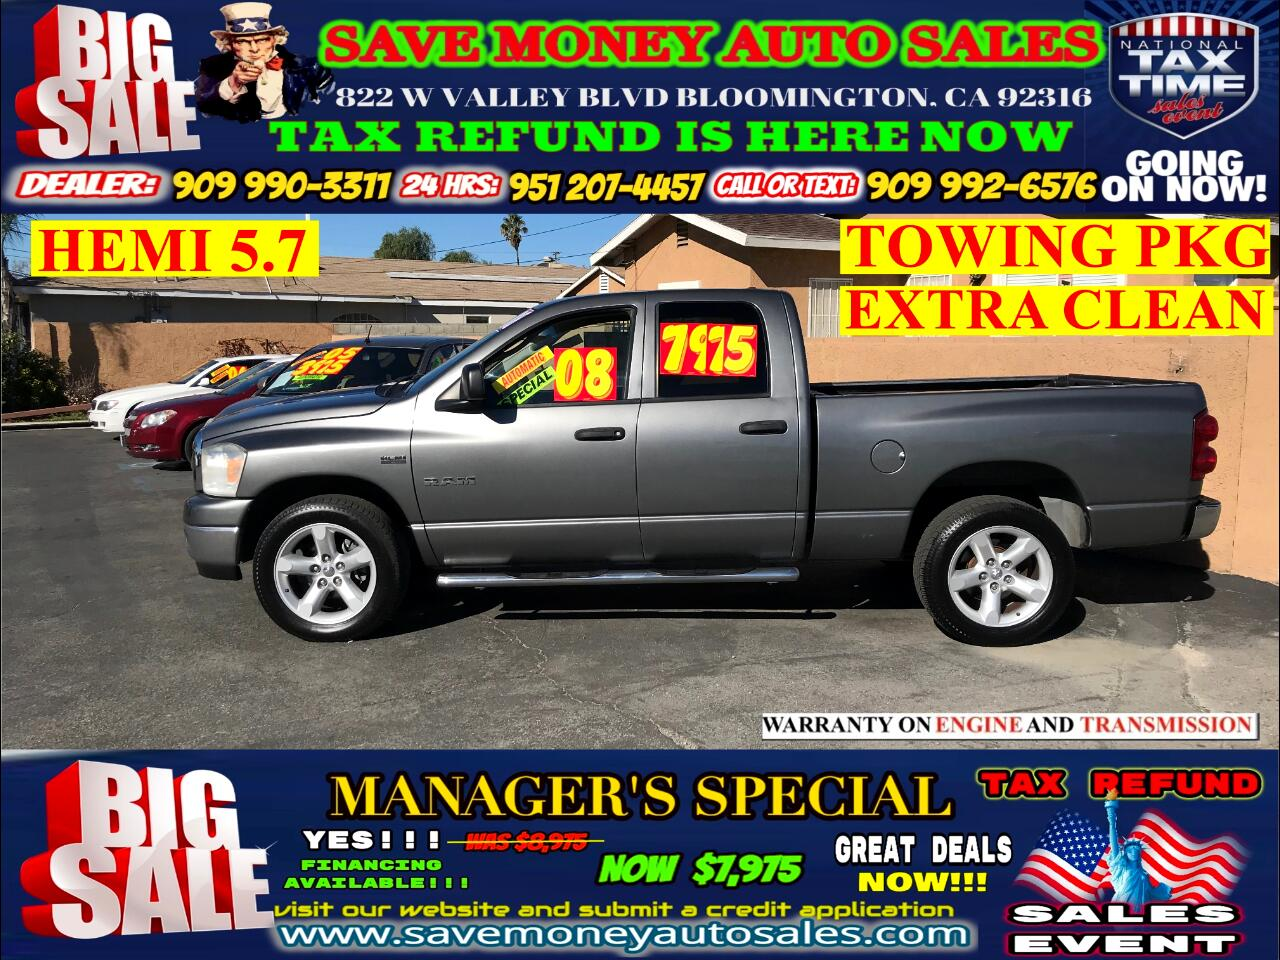 2008 Dodge Ram 1500 SXT QUAD CAB>>HEMI ENGINE 5.7+TOW PACKAGE!!!!